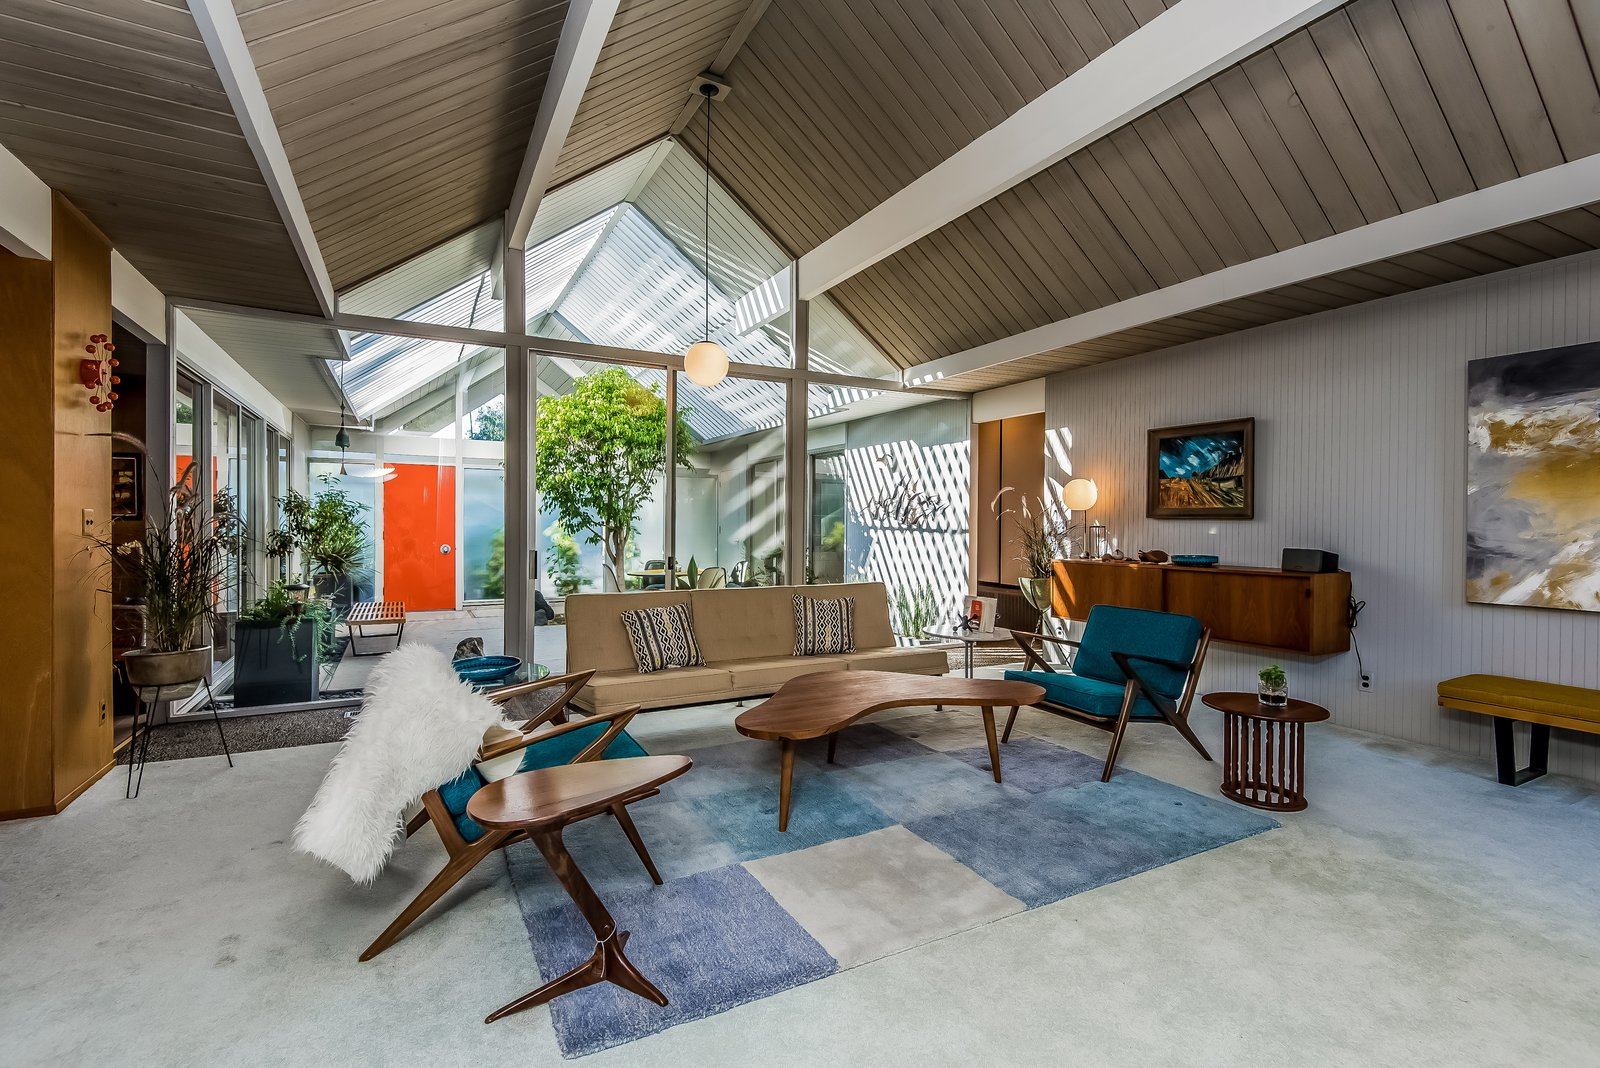 Original tongue-and-groove ceilings and Philippine mahogany paneling grace the interior.  Photo 4 of 13 in With Only One Previous Set of Owners, a Pristine Eichler Home Asks $799K